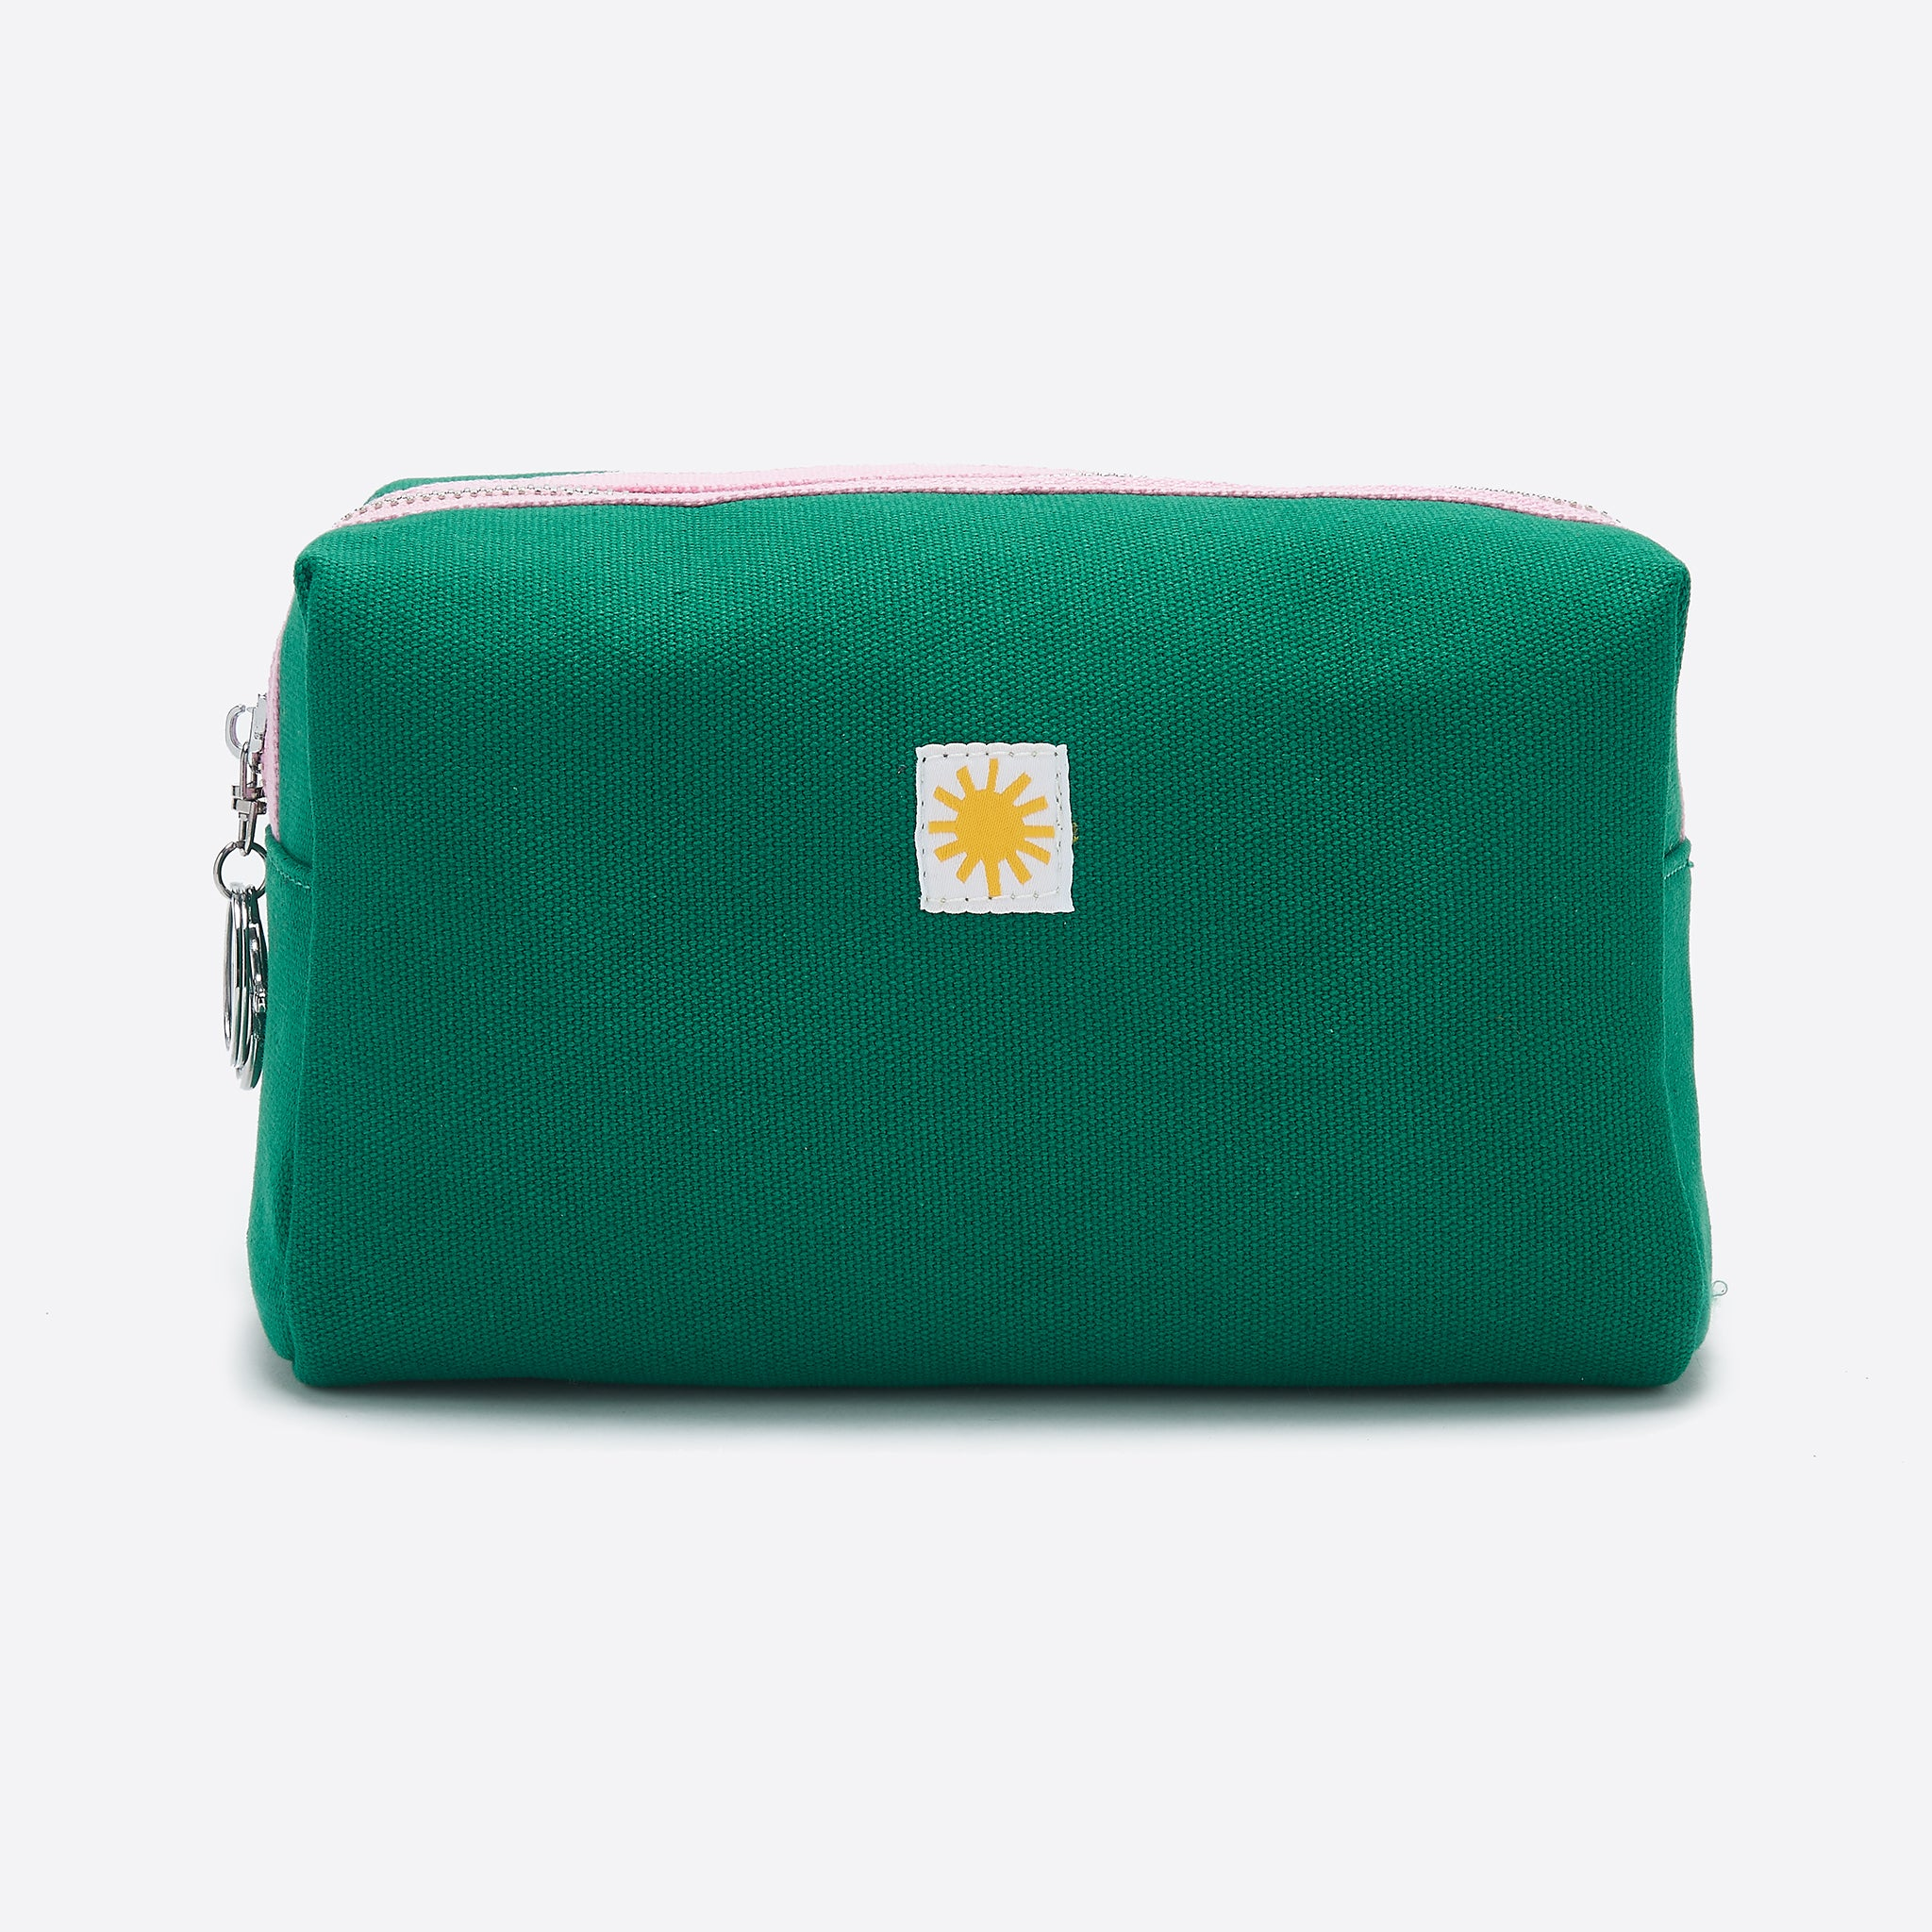 LF Markey Canvas Toiletry Bag in Green